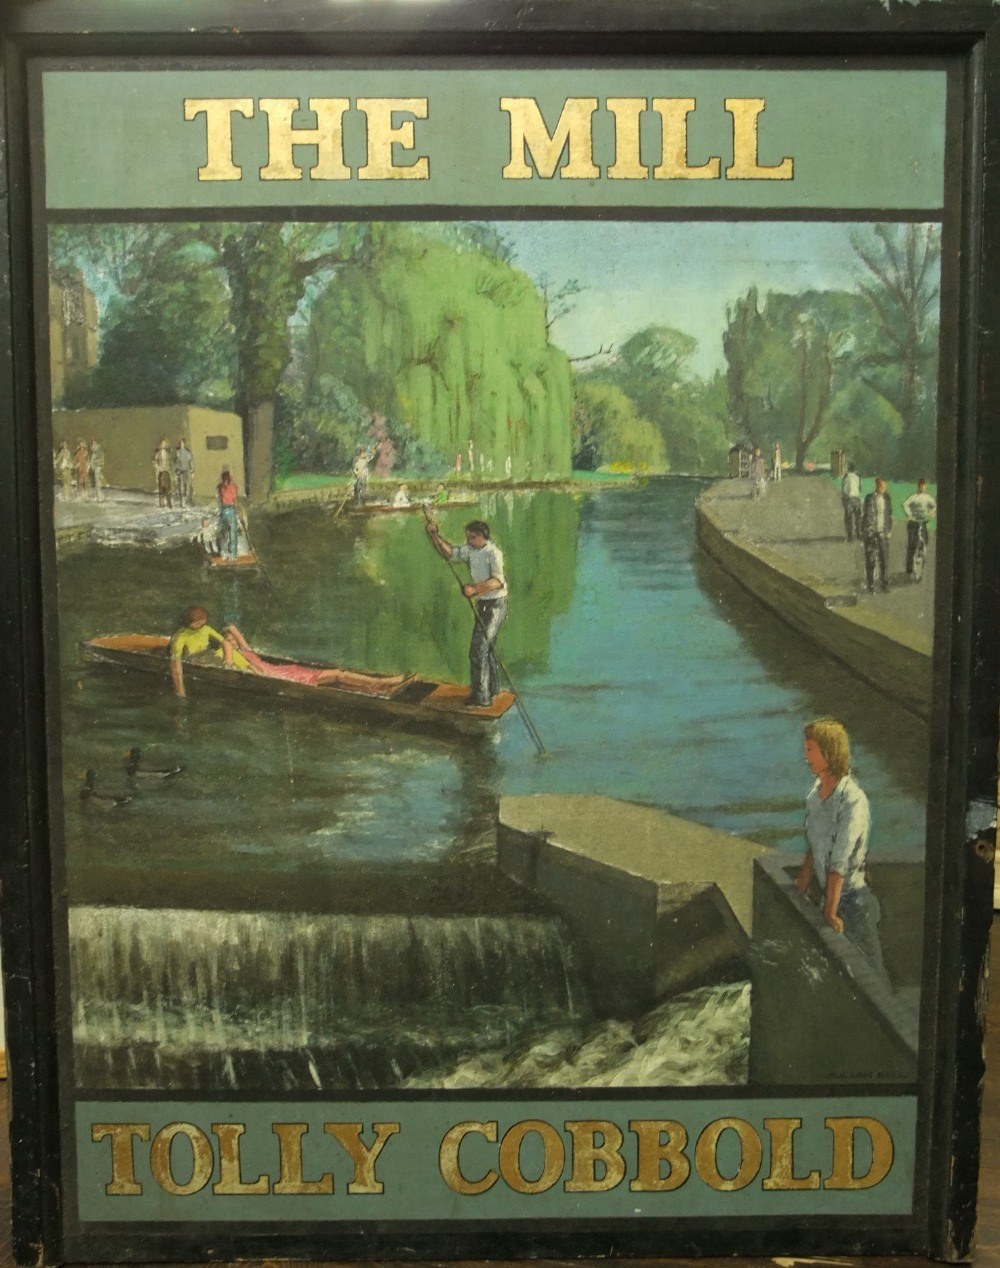 Lot 163 - Julian Bell (B. 1952) - 'The Mill, Tolly Cobbold', signed, hand painted twin sided pub sign, 107 x